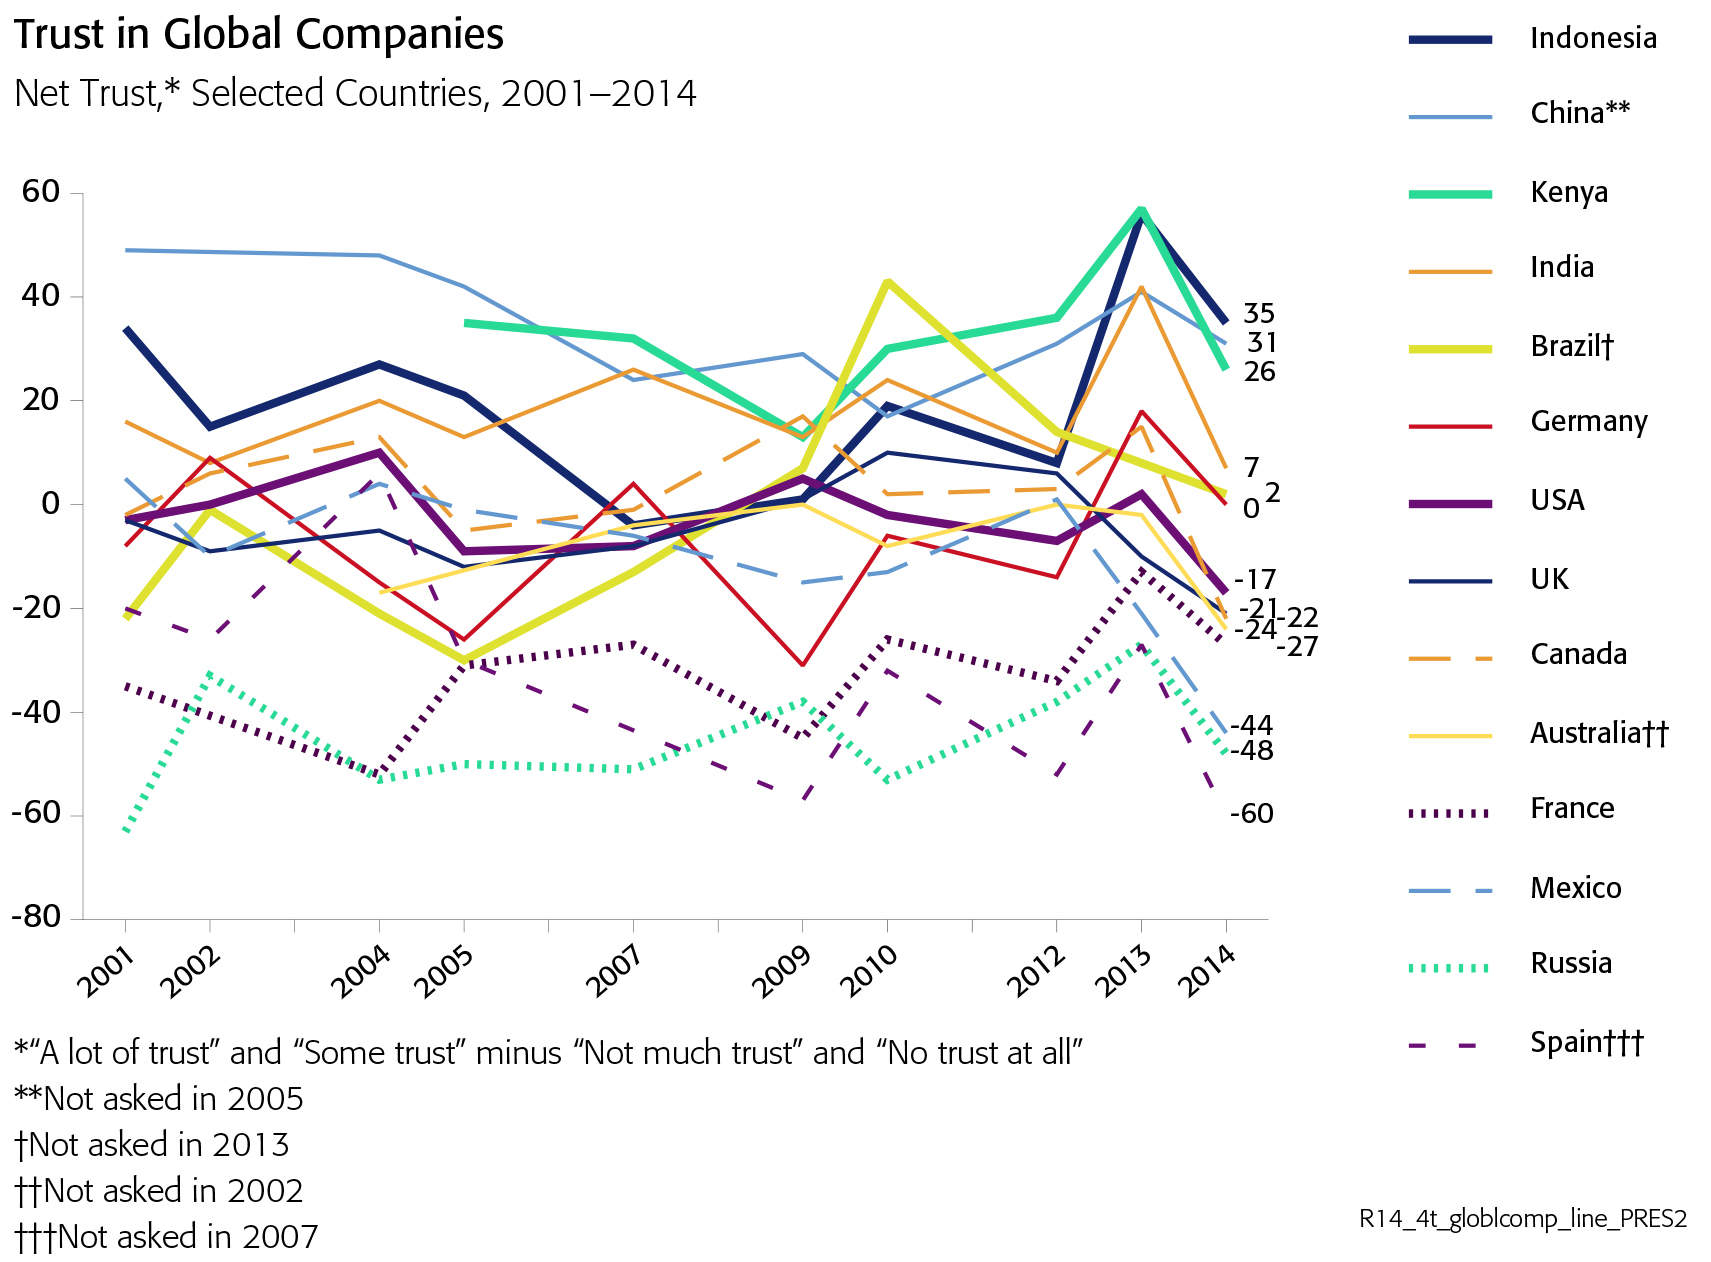 Trust in global companies chart